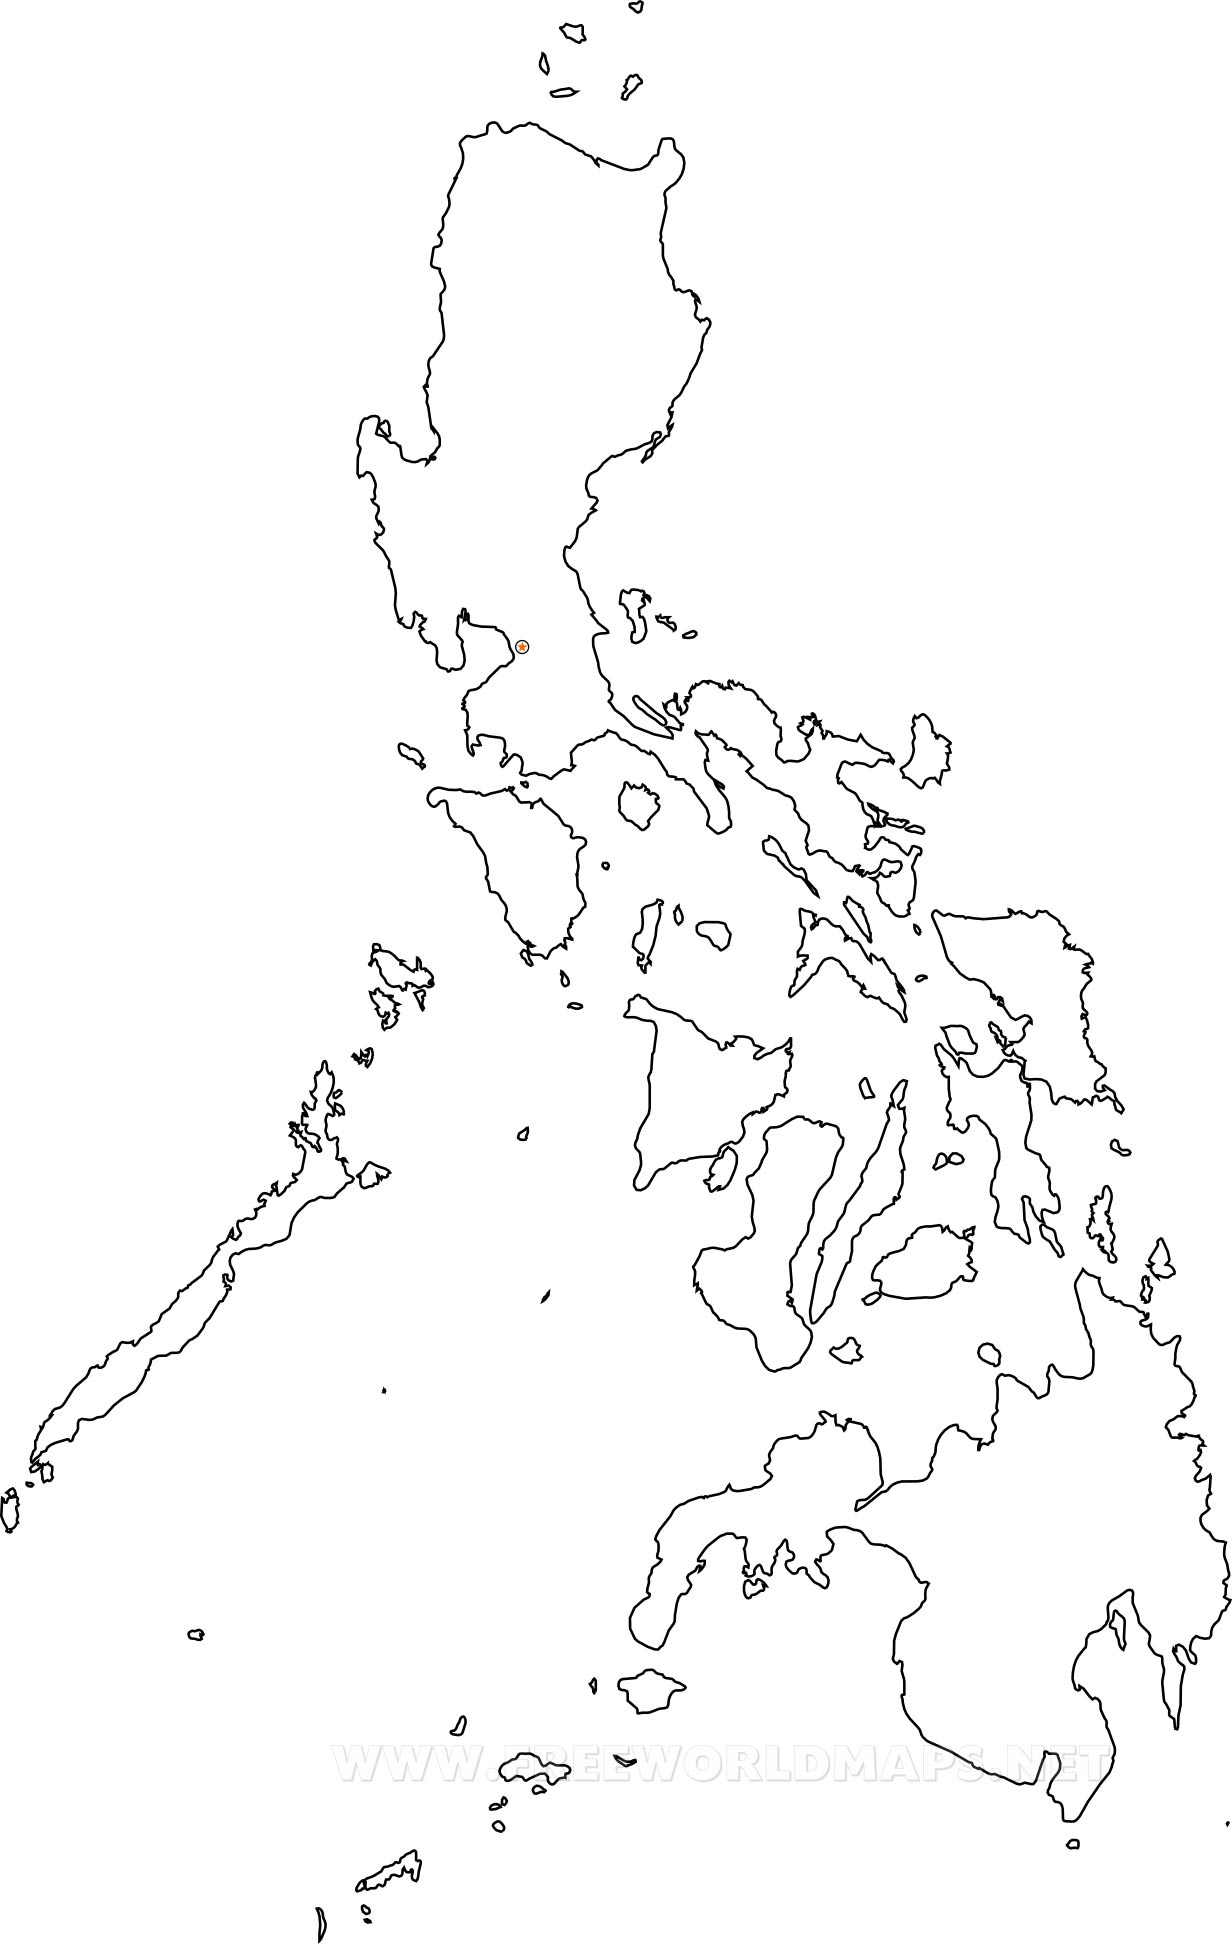 Philippines Country In World Map C Cp